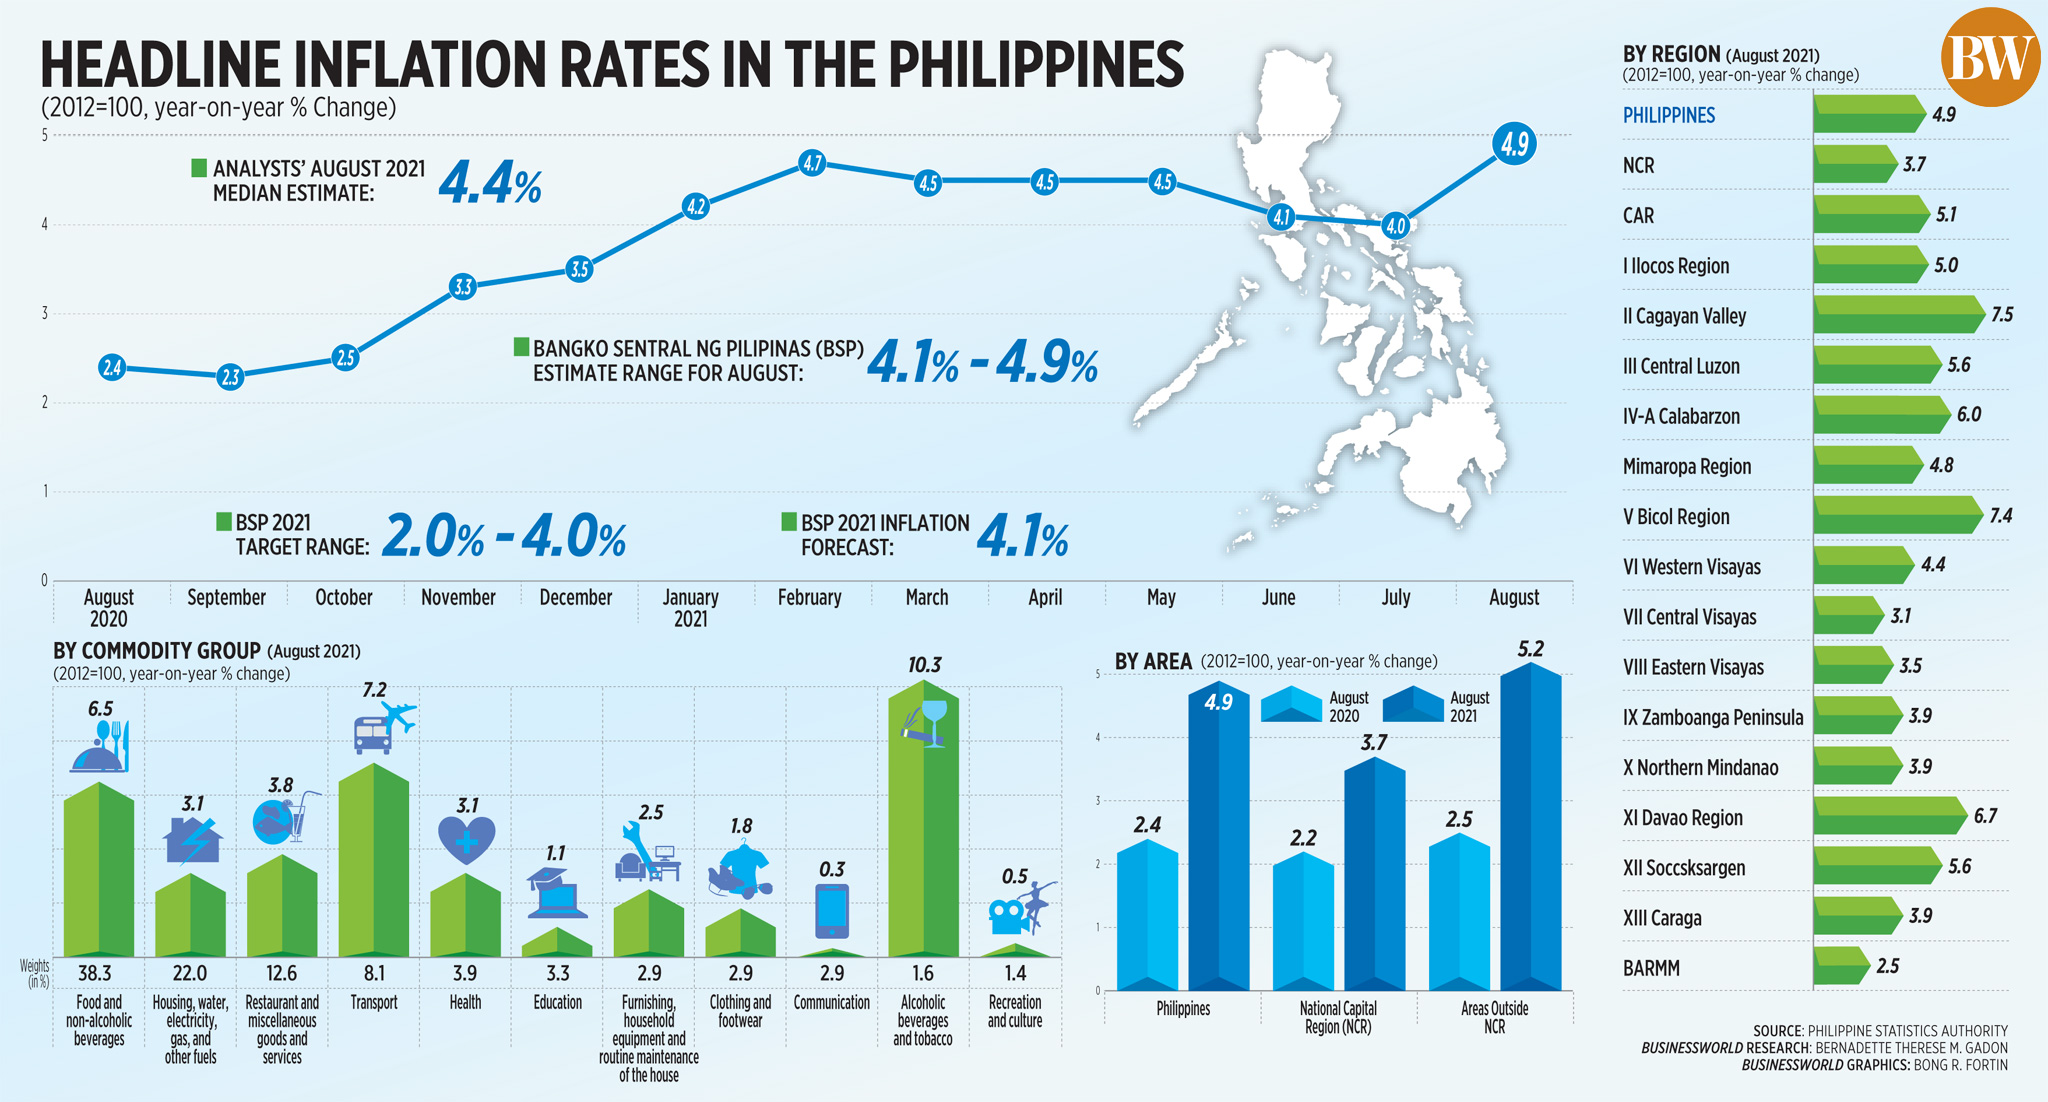 Headline inflation rate in the Philippines (August 2021)